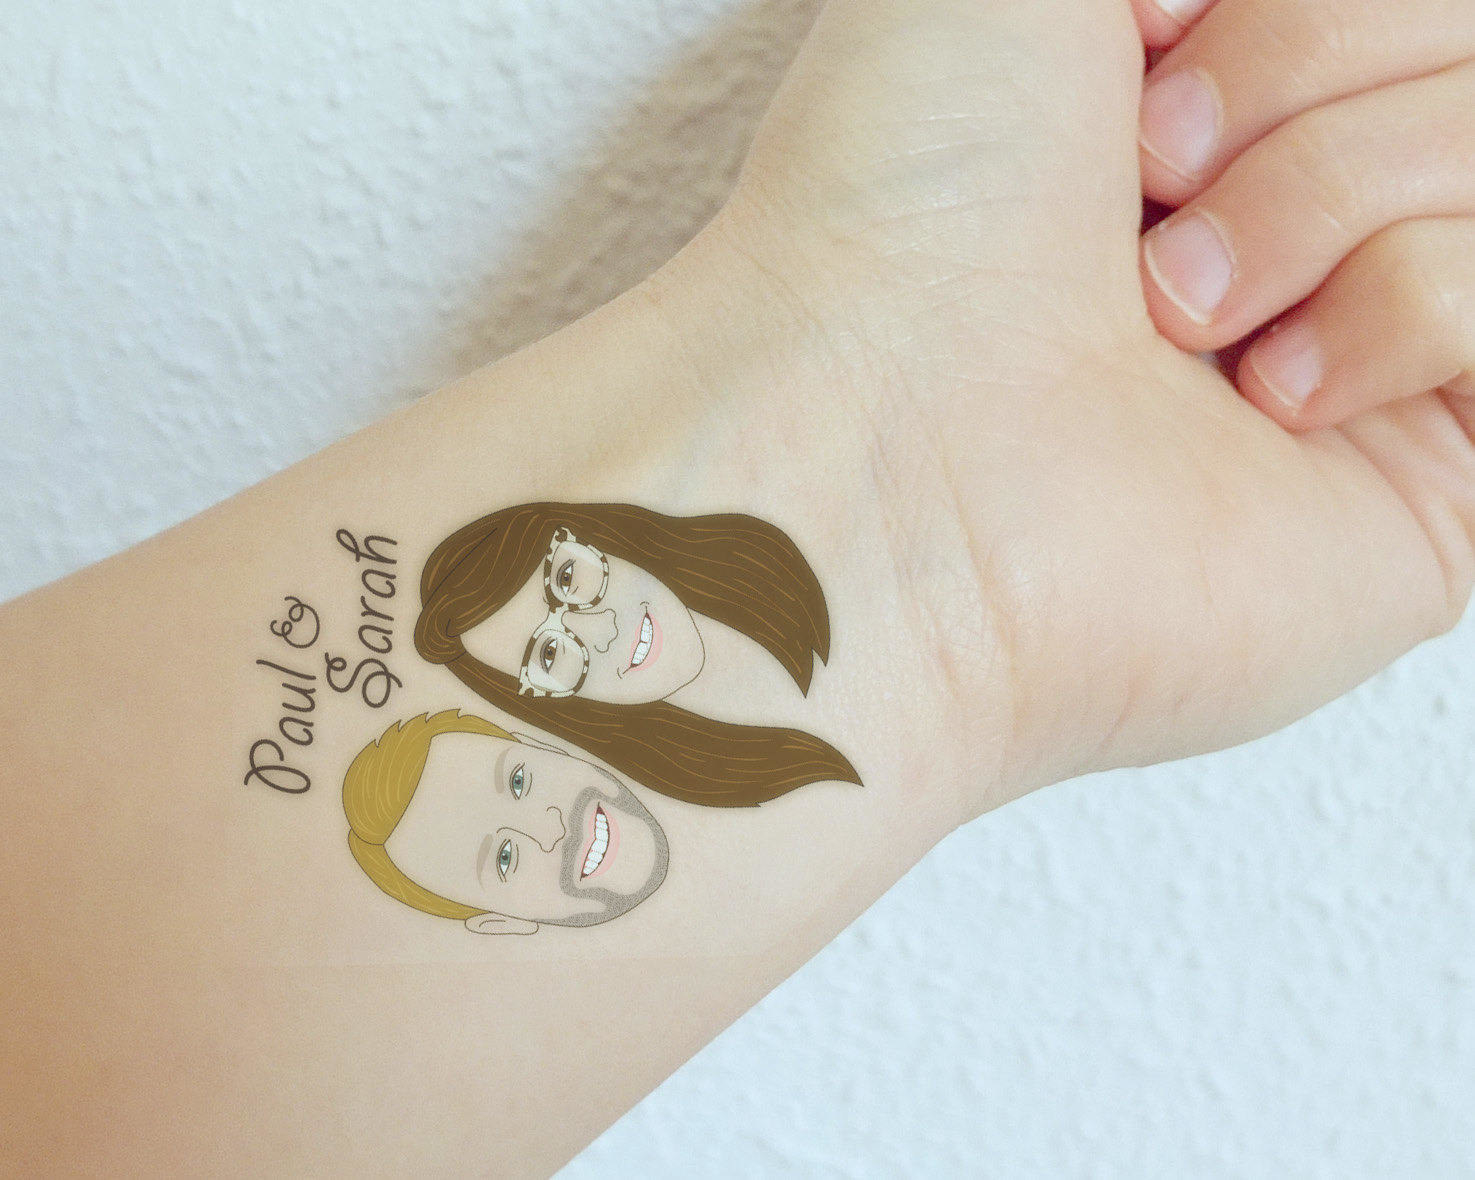 illustrated faces as a temporary tattoo